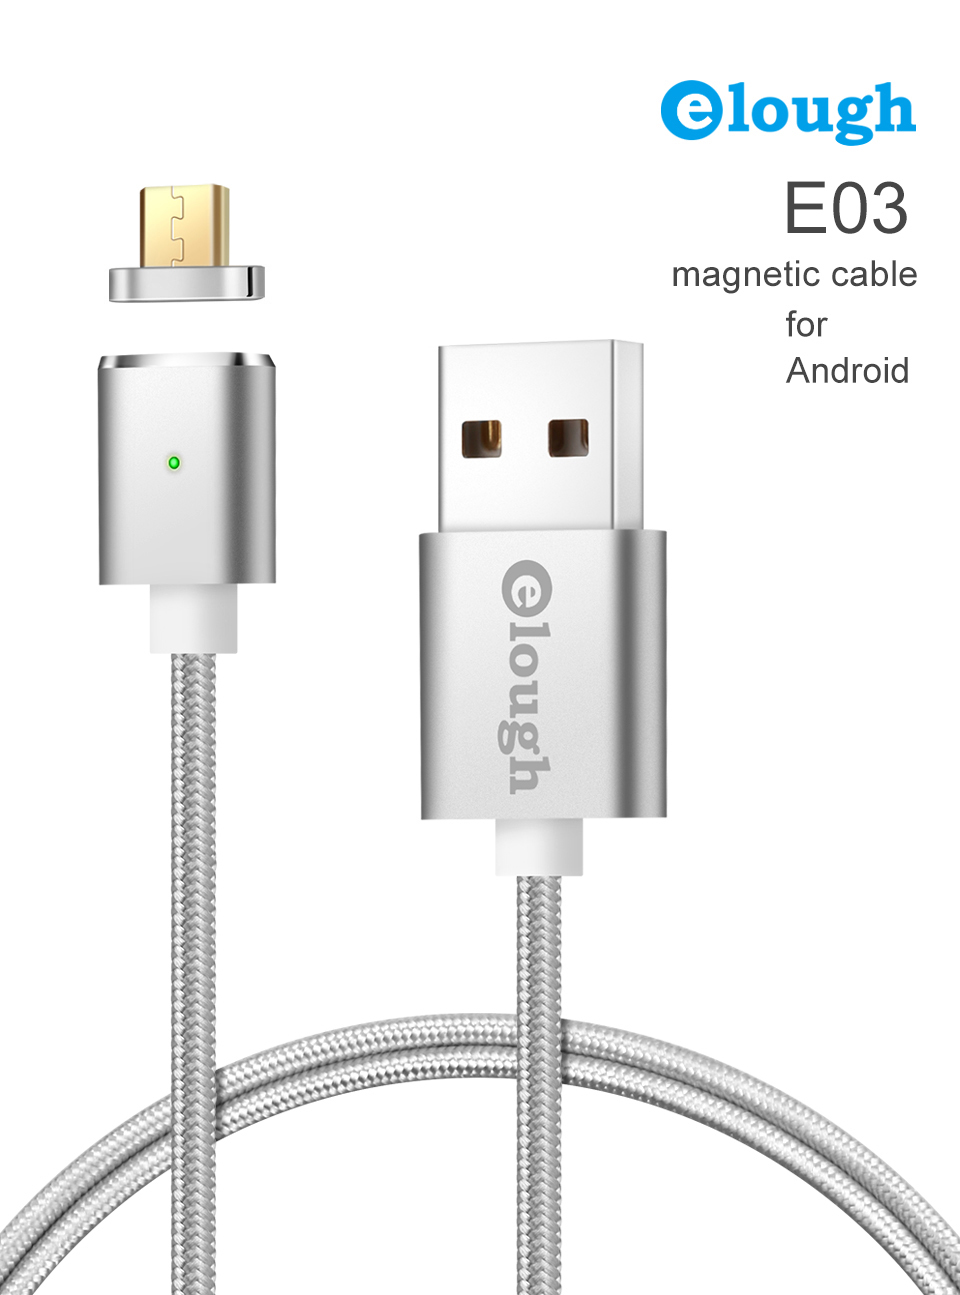 Elough E03 Magnetic Micro USB Cable Charger For Fast Charging And Magnetic Data Cable For Phones 2